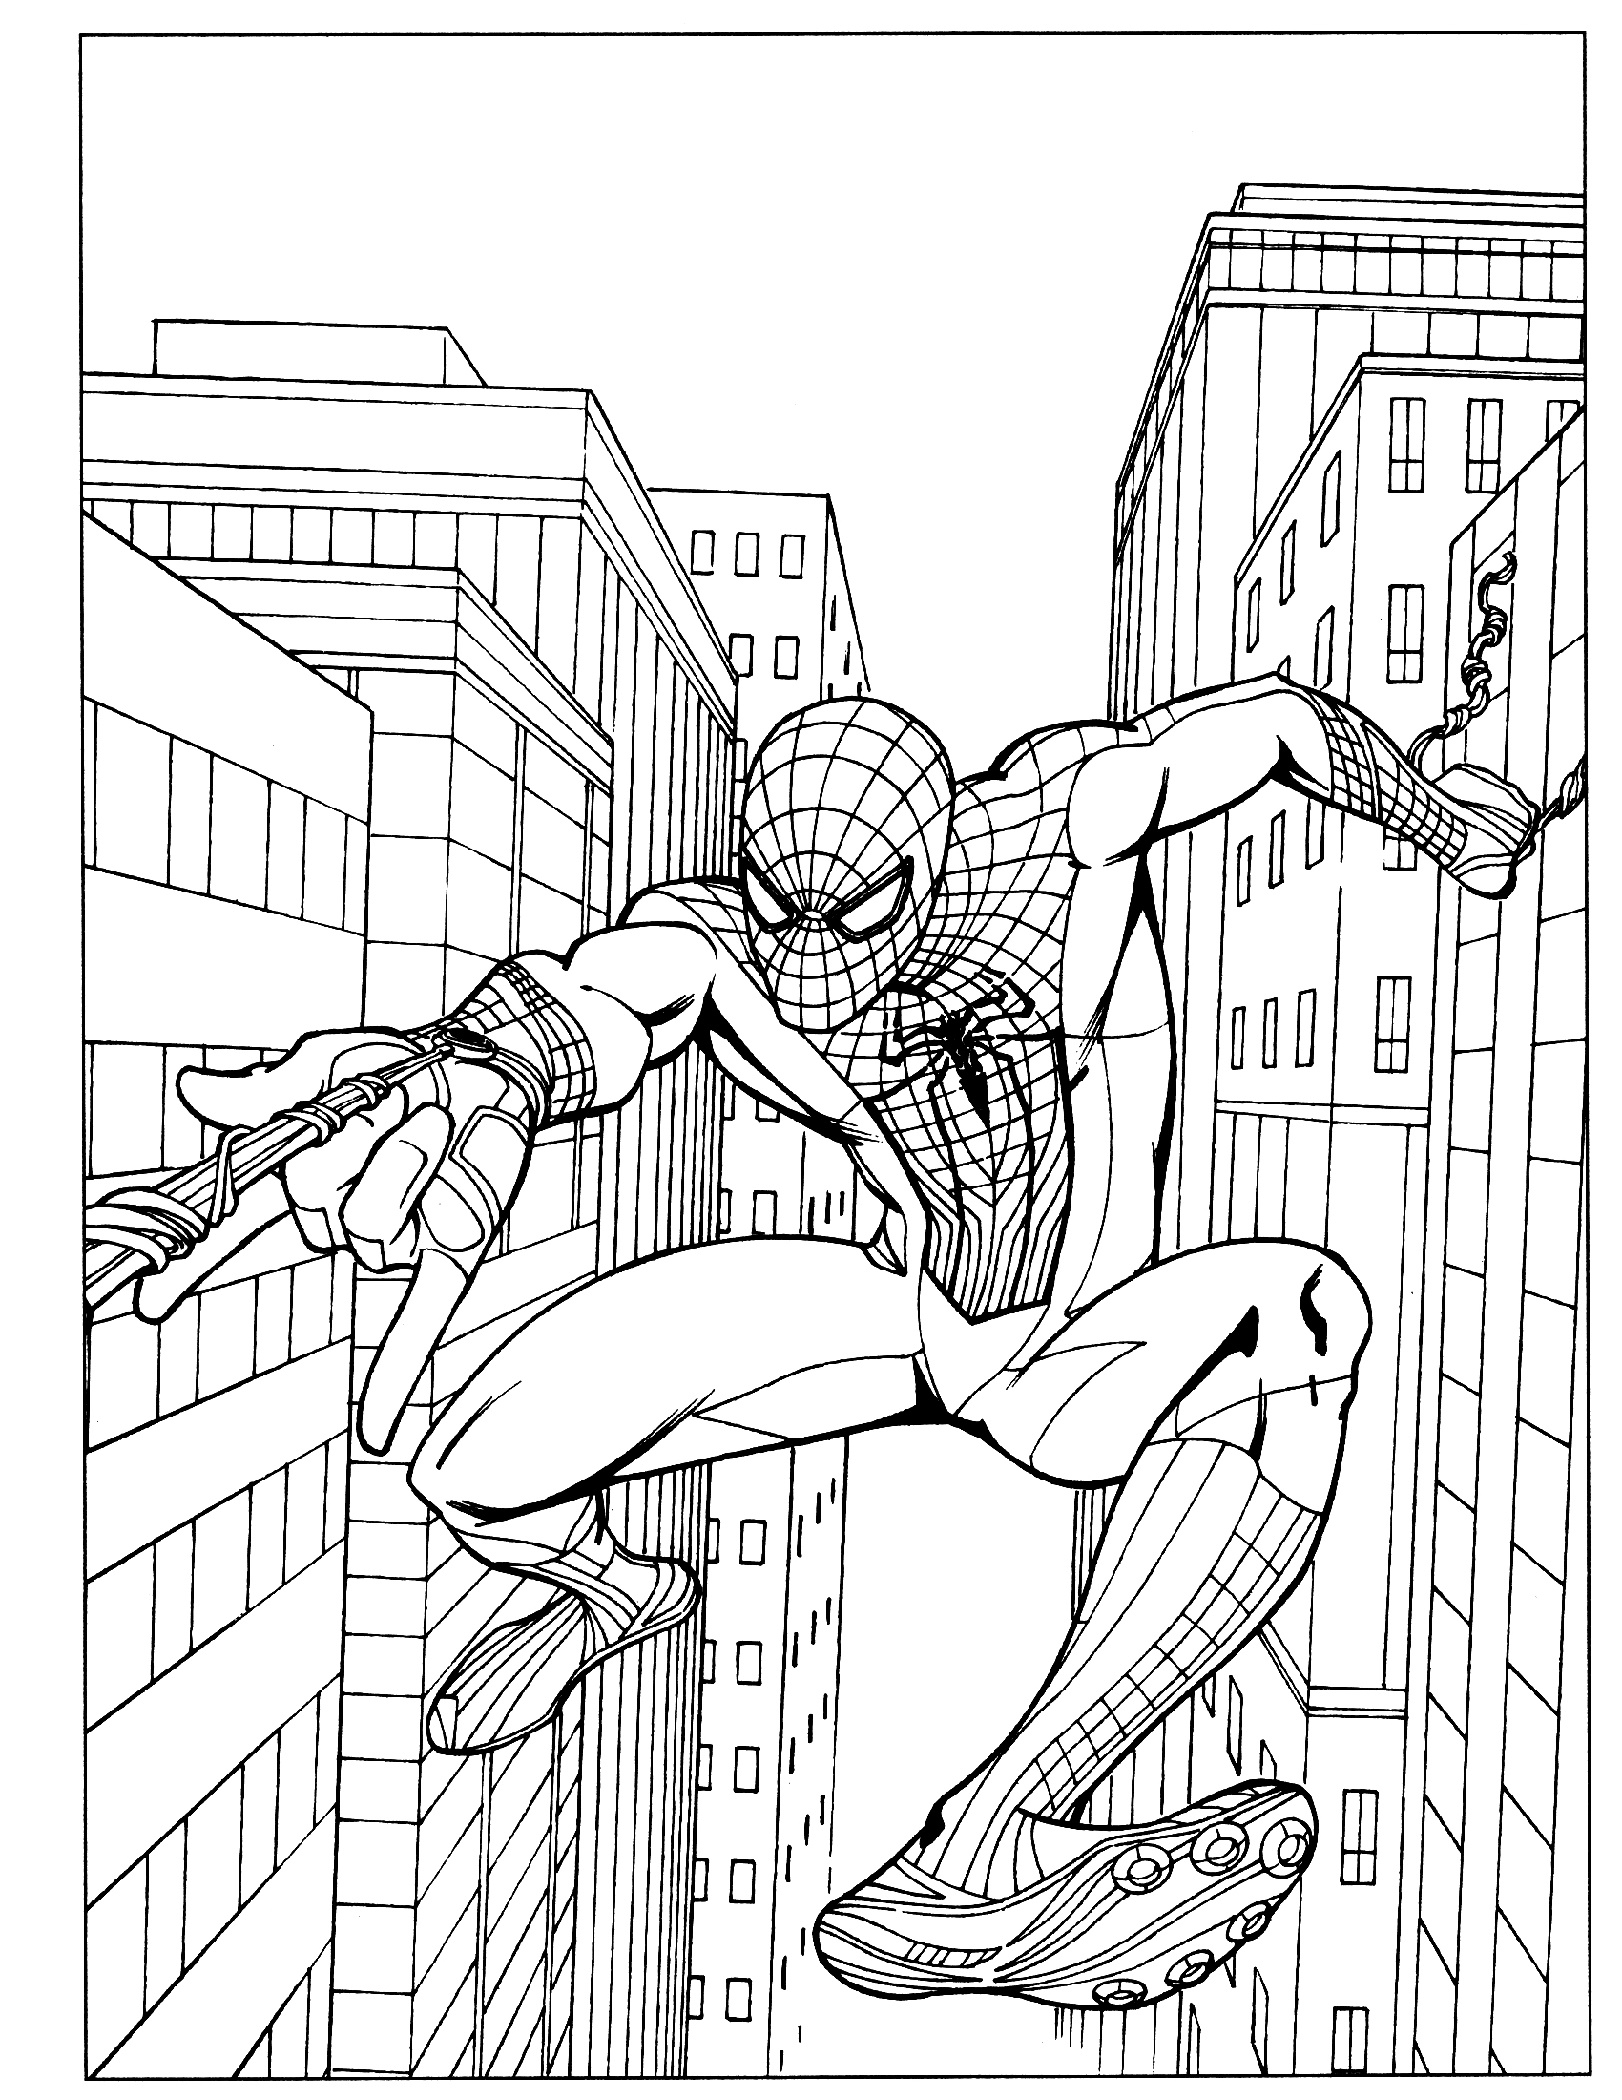 Spiderman-Coloring-Pages-Pdf-To-Print